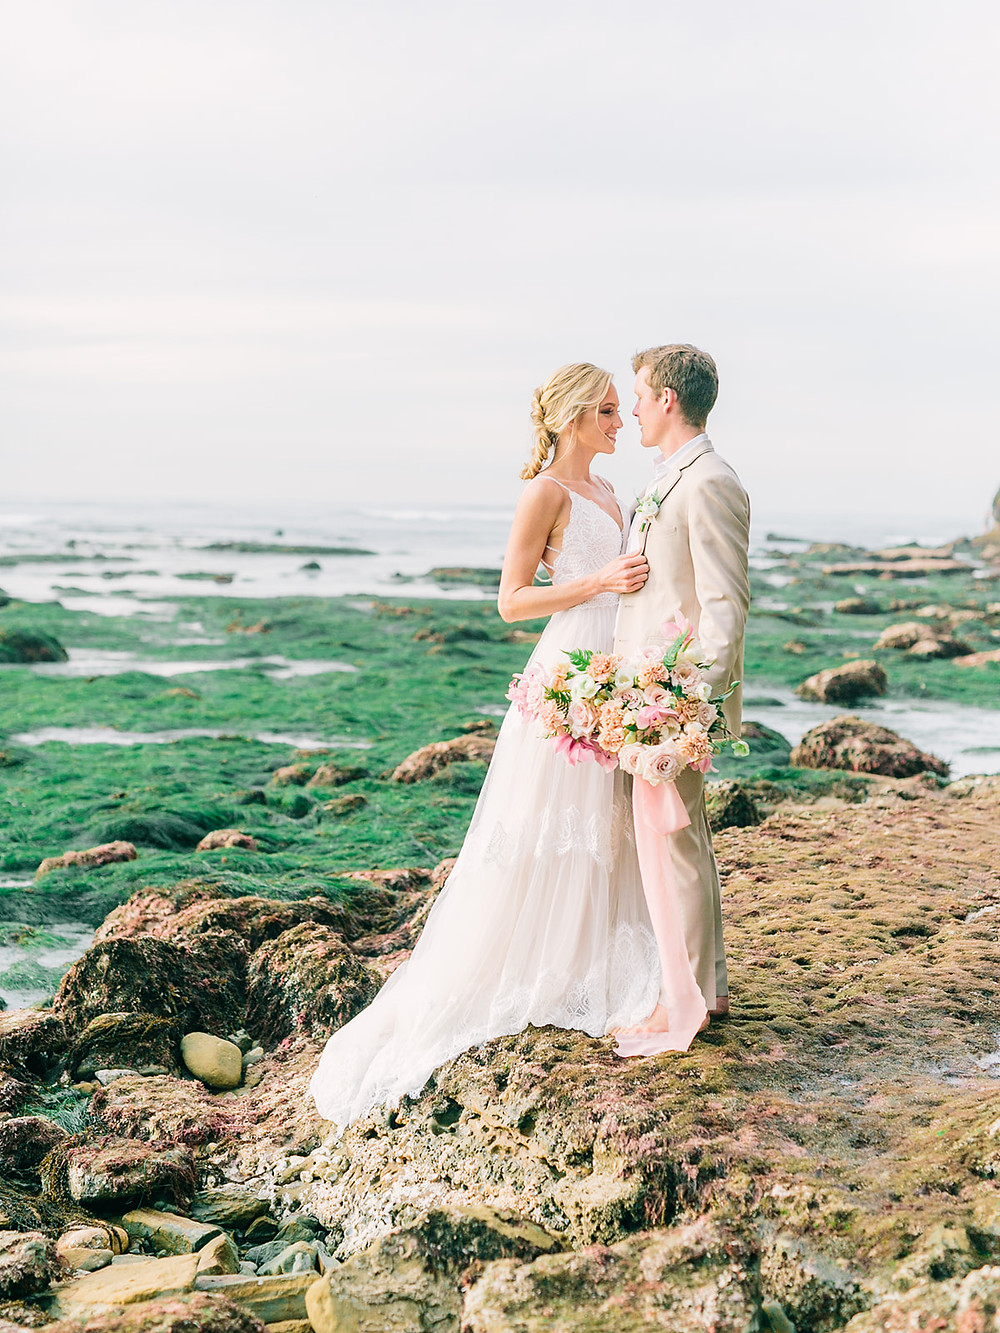 Beautiful lush and romantic Bridal Bouquet filled with Orchids, Roses & Hellebores for beach wedding What is more romantic that an oversized organic bouquet for a dreamy seaside wedding. This couple took their photos in the tide pools of Sunset Cliffs in San Diego, CA. Brides bouquet was lush and ethereal with a soft blush and pink palette for Spring of roses, orchids and carnations. #orchidbouquet #springweddingflowers #beachwedding #sandiegobeachwedding #sandiegoweddingflorist #sunsetcliffssandiego